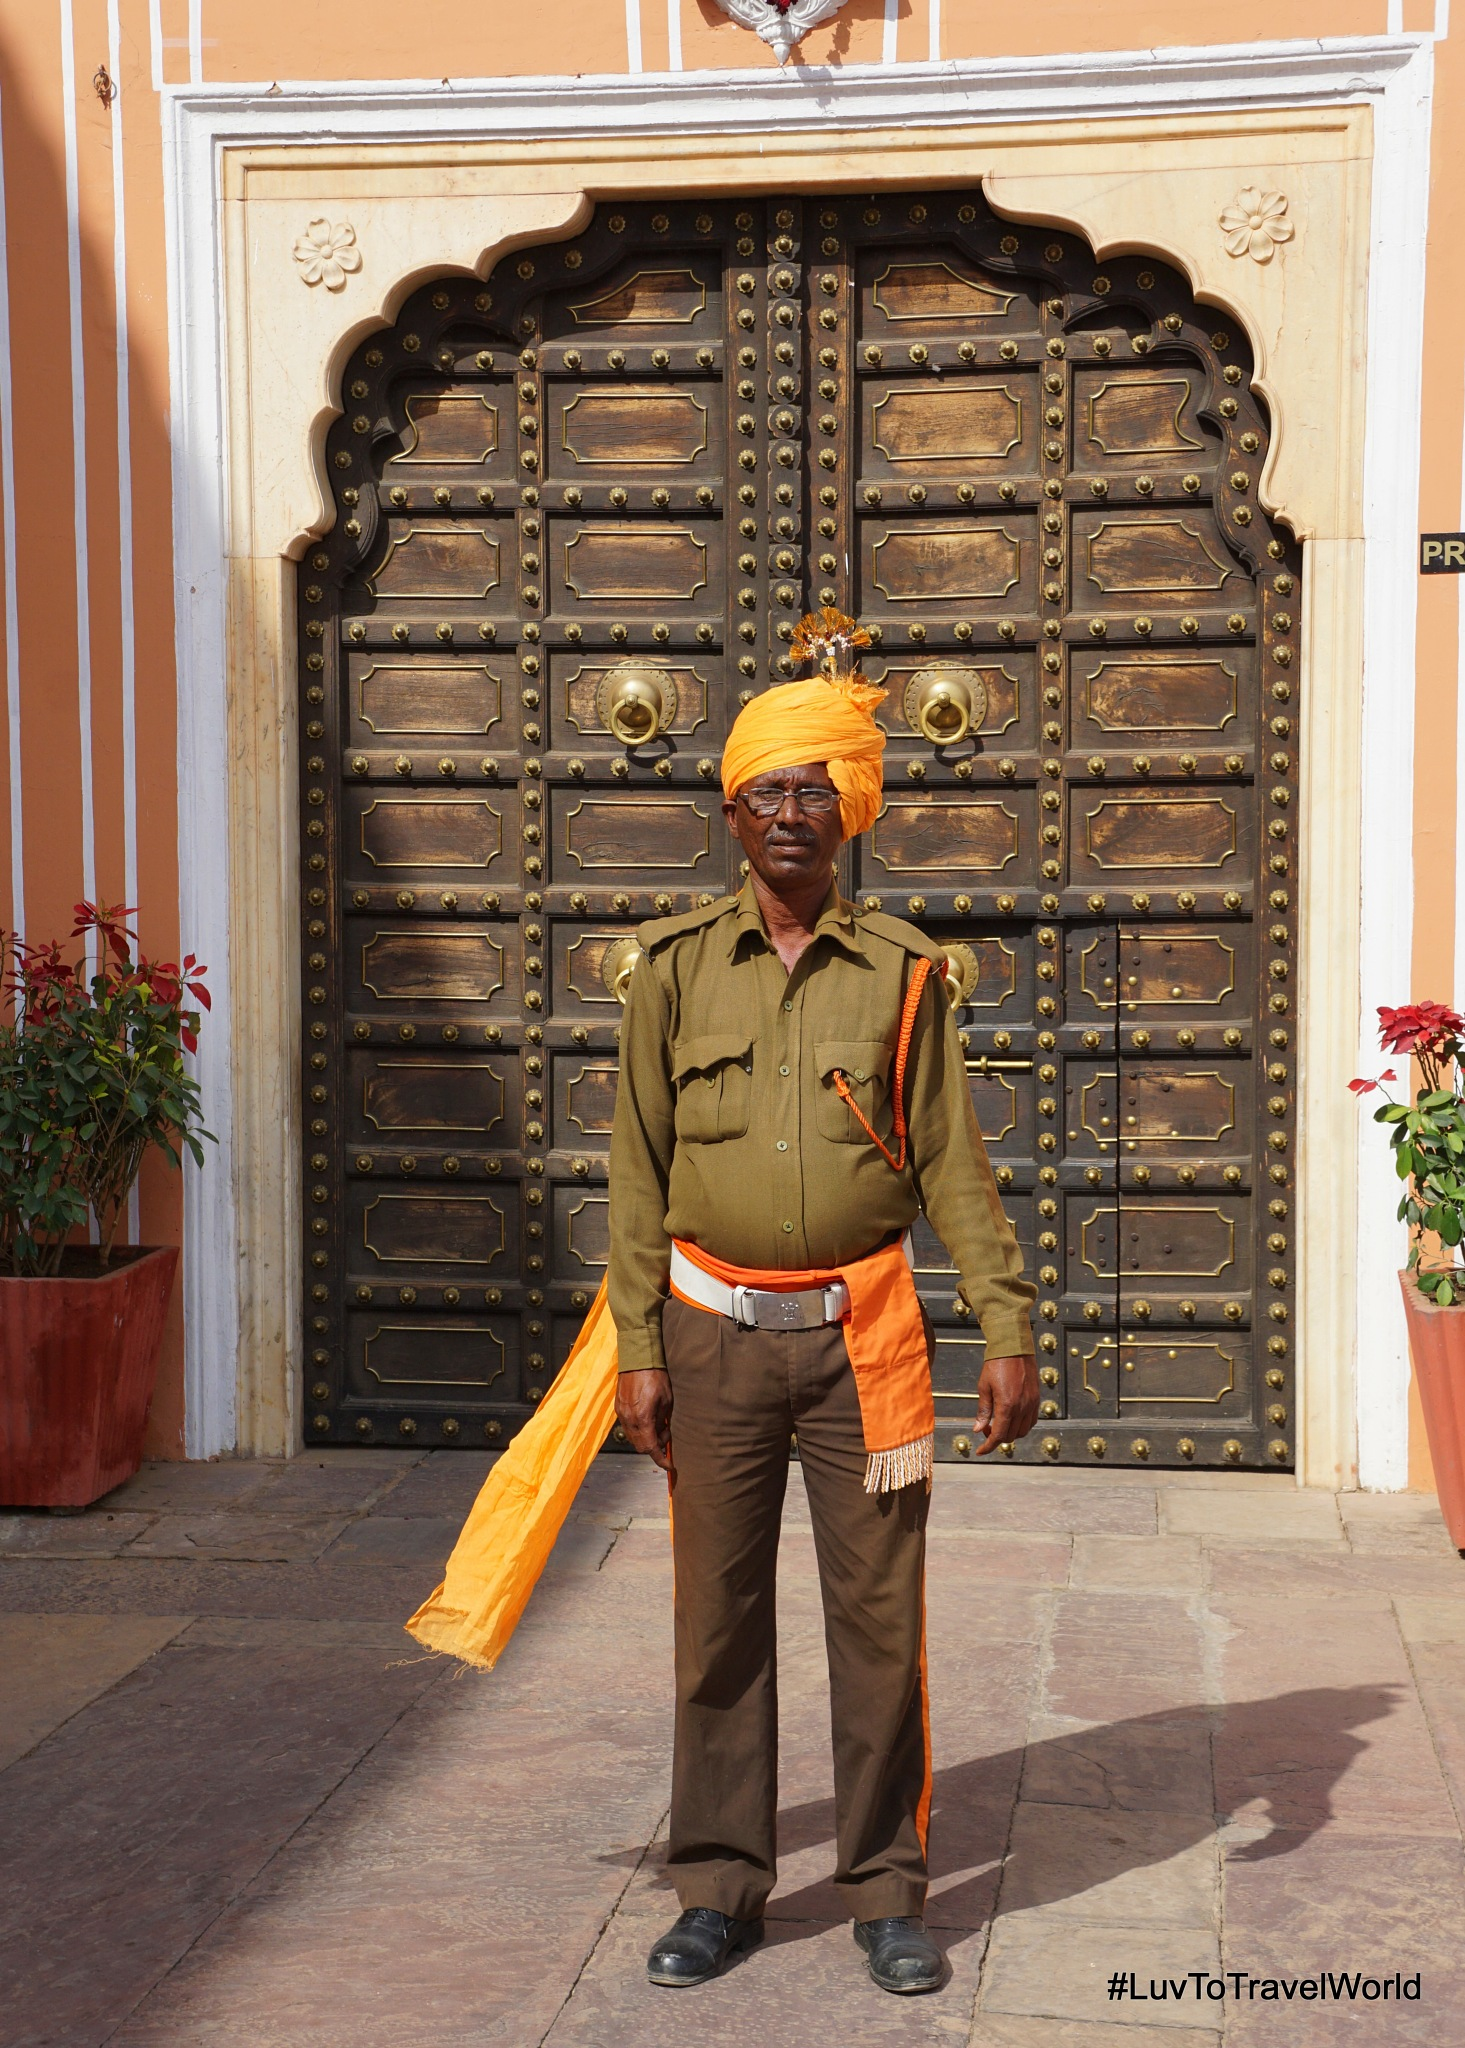 Palace Guard by #LuvToTravelWorld